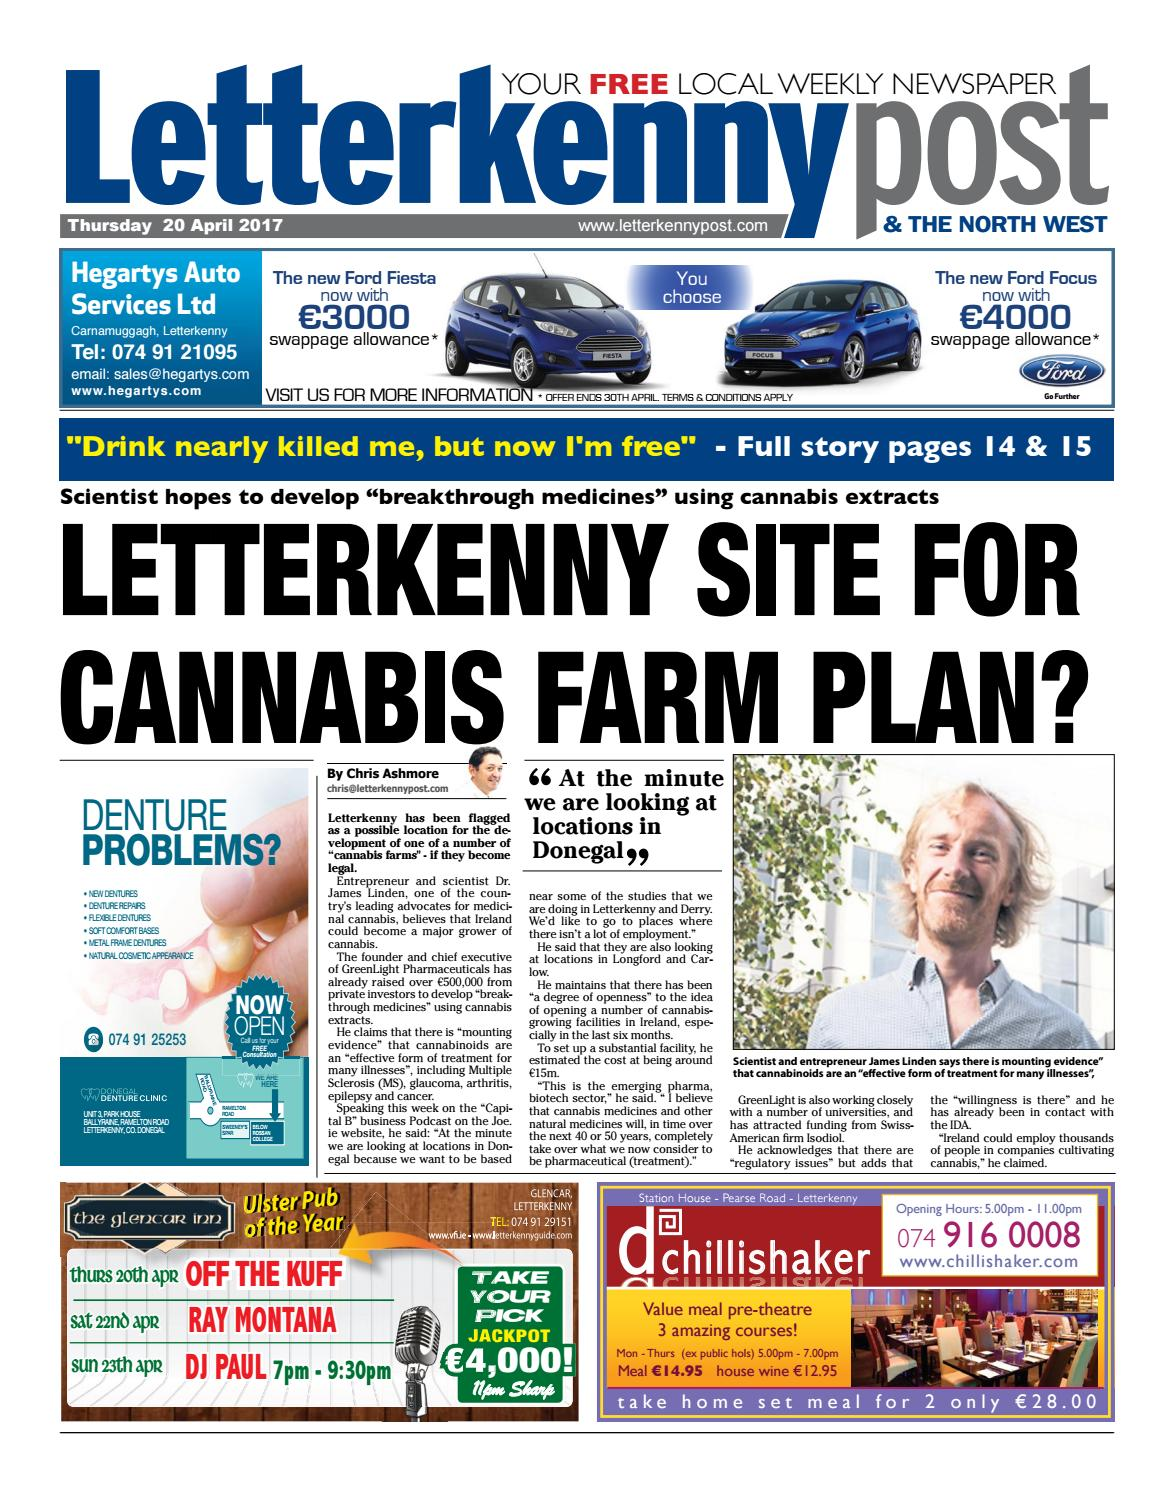 6485297c52 Letterkenny post 20 04 17 by River Media Newspapers - issuu